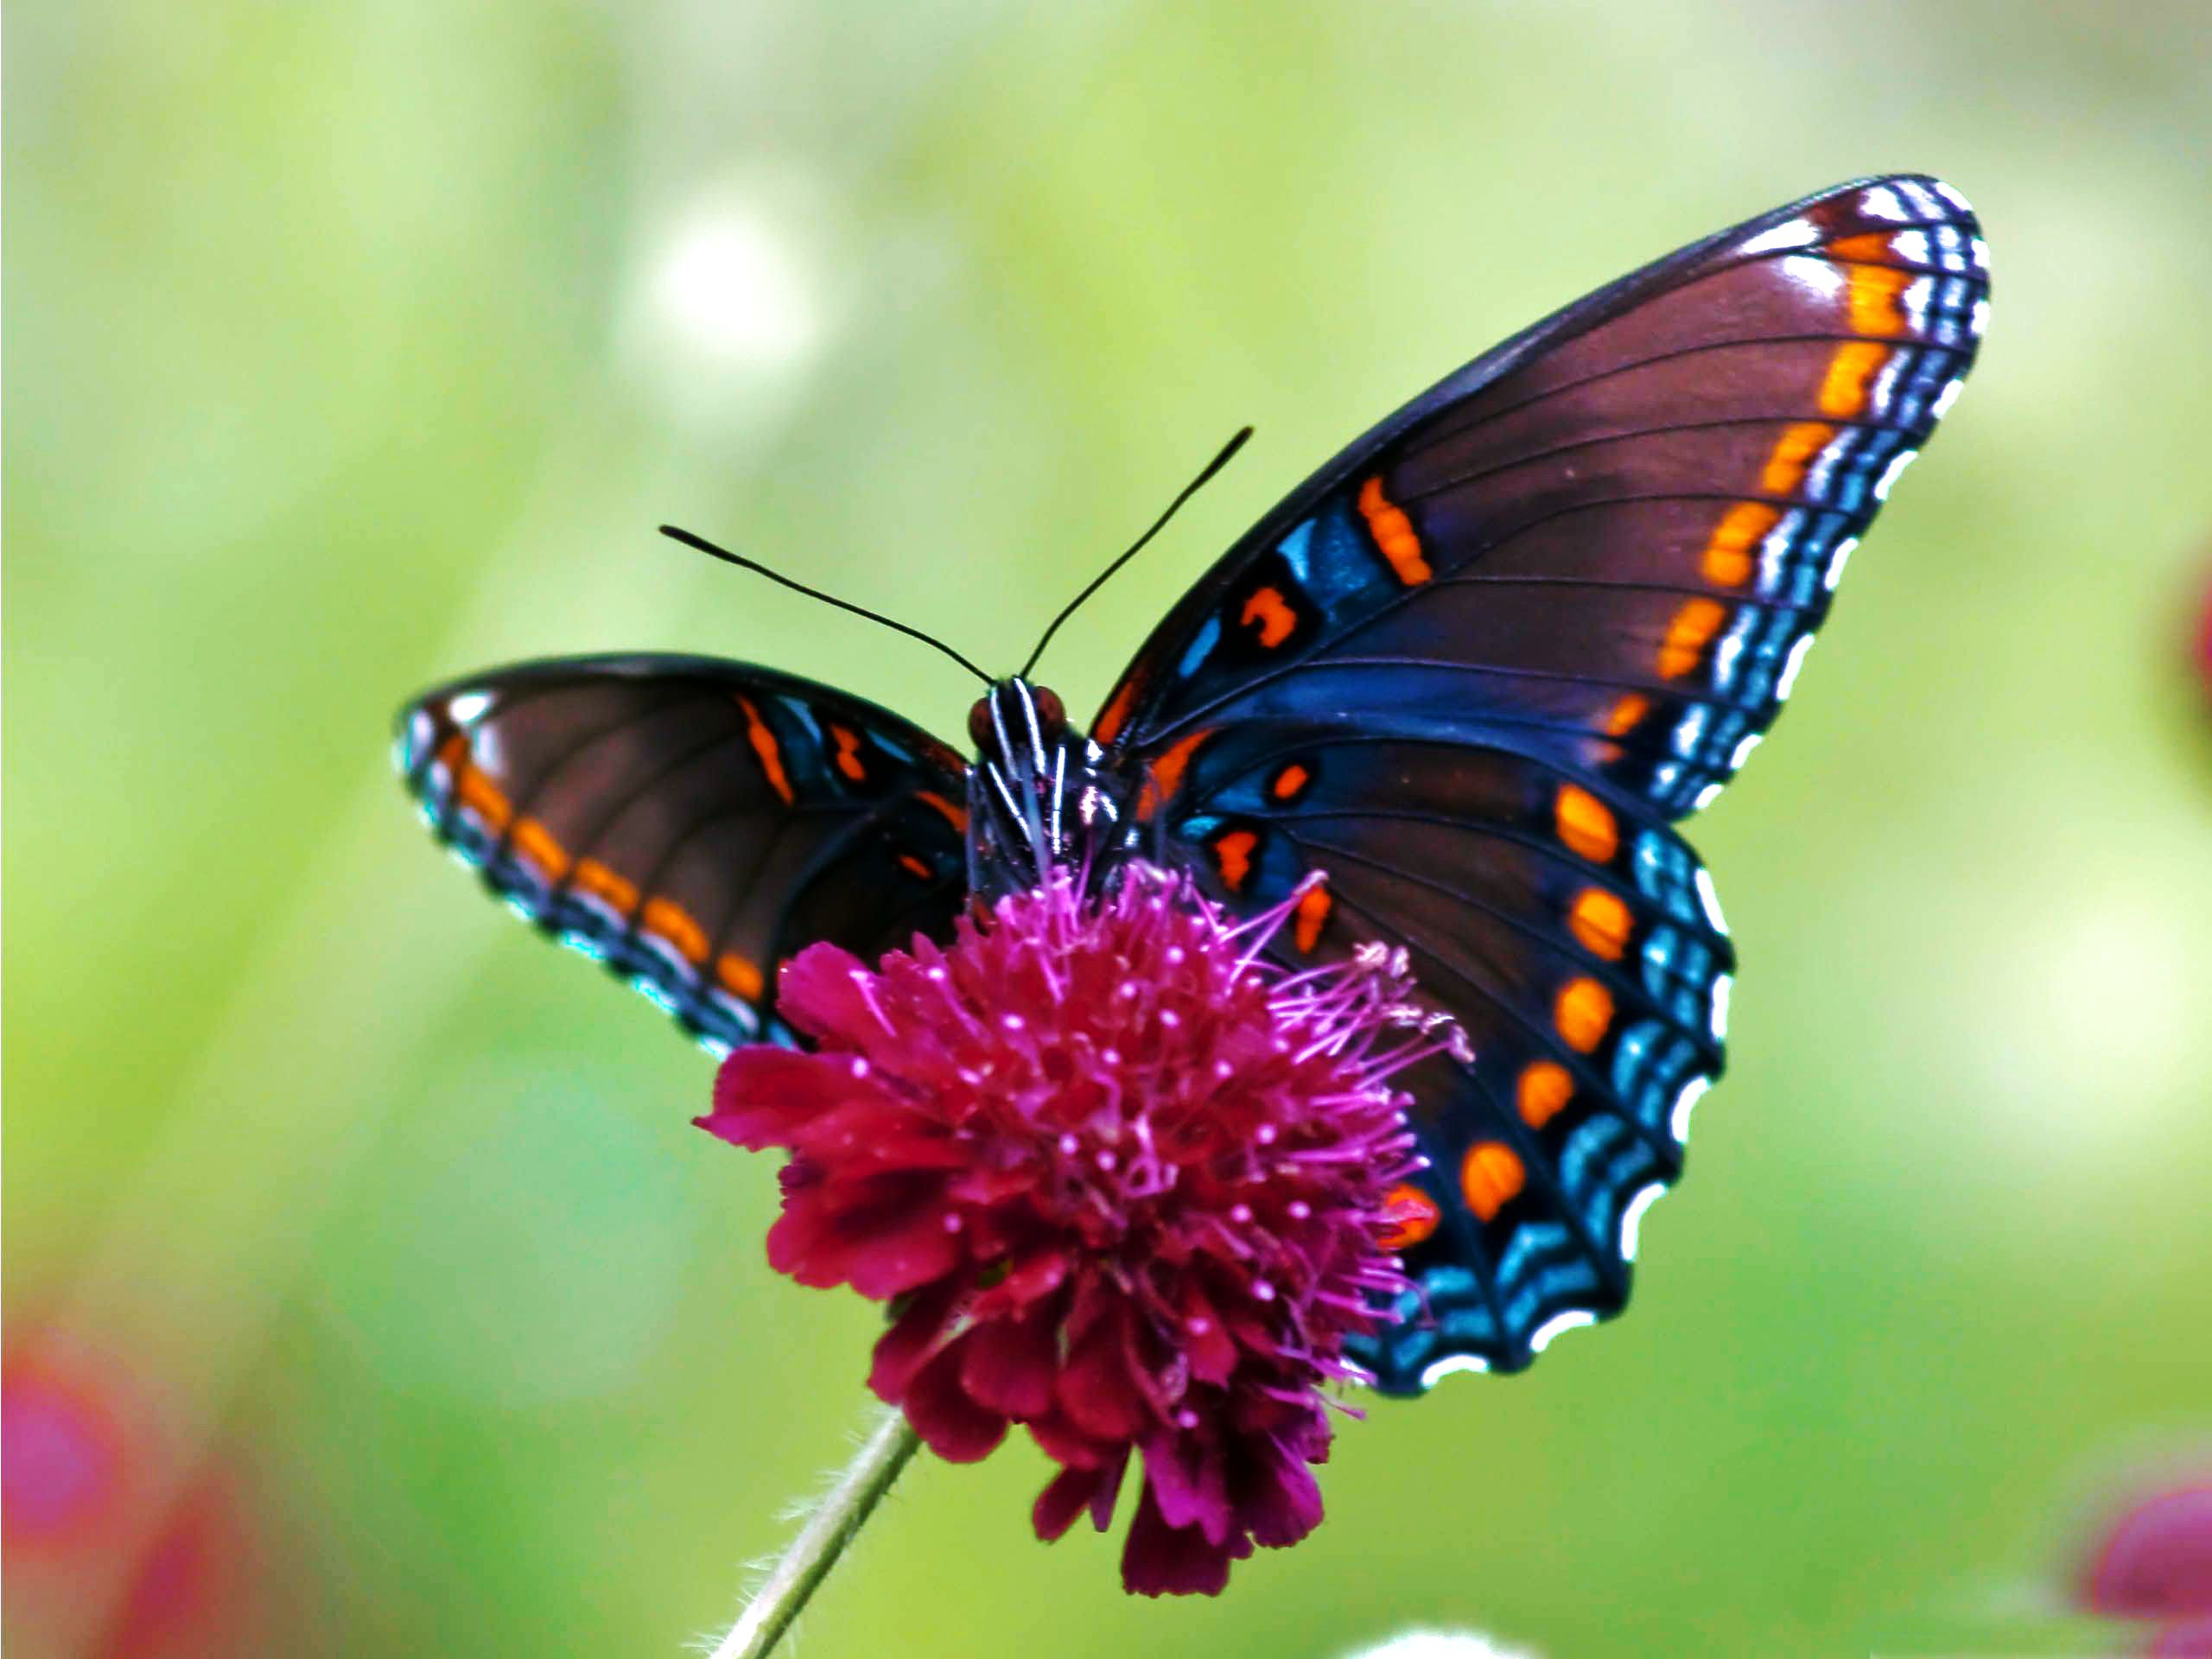 55 Colorful ButterflyHD Images Wallpapers Download 2560x1920